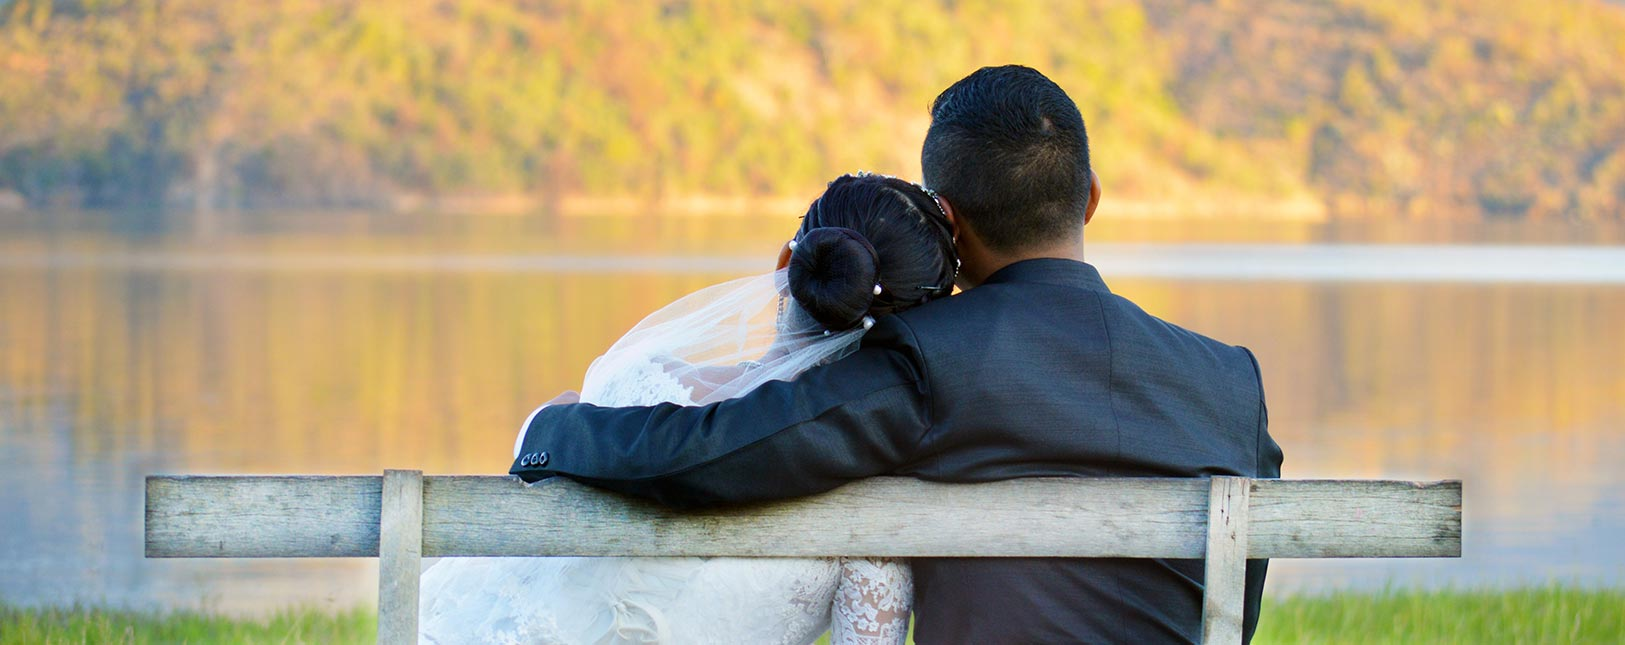 Husband and wife sitting on bench by lake